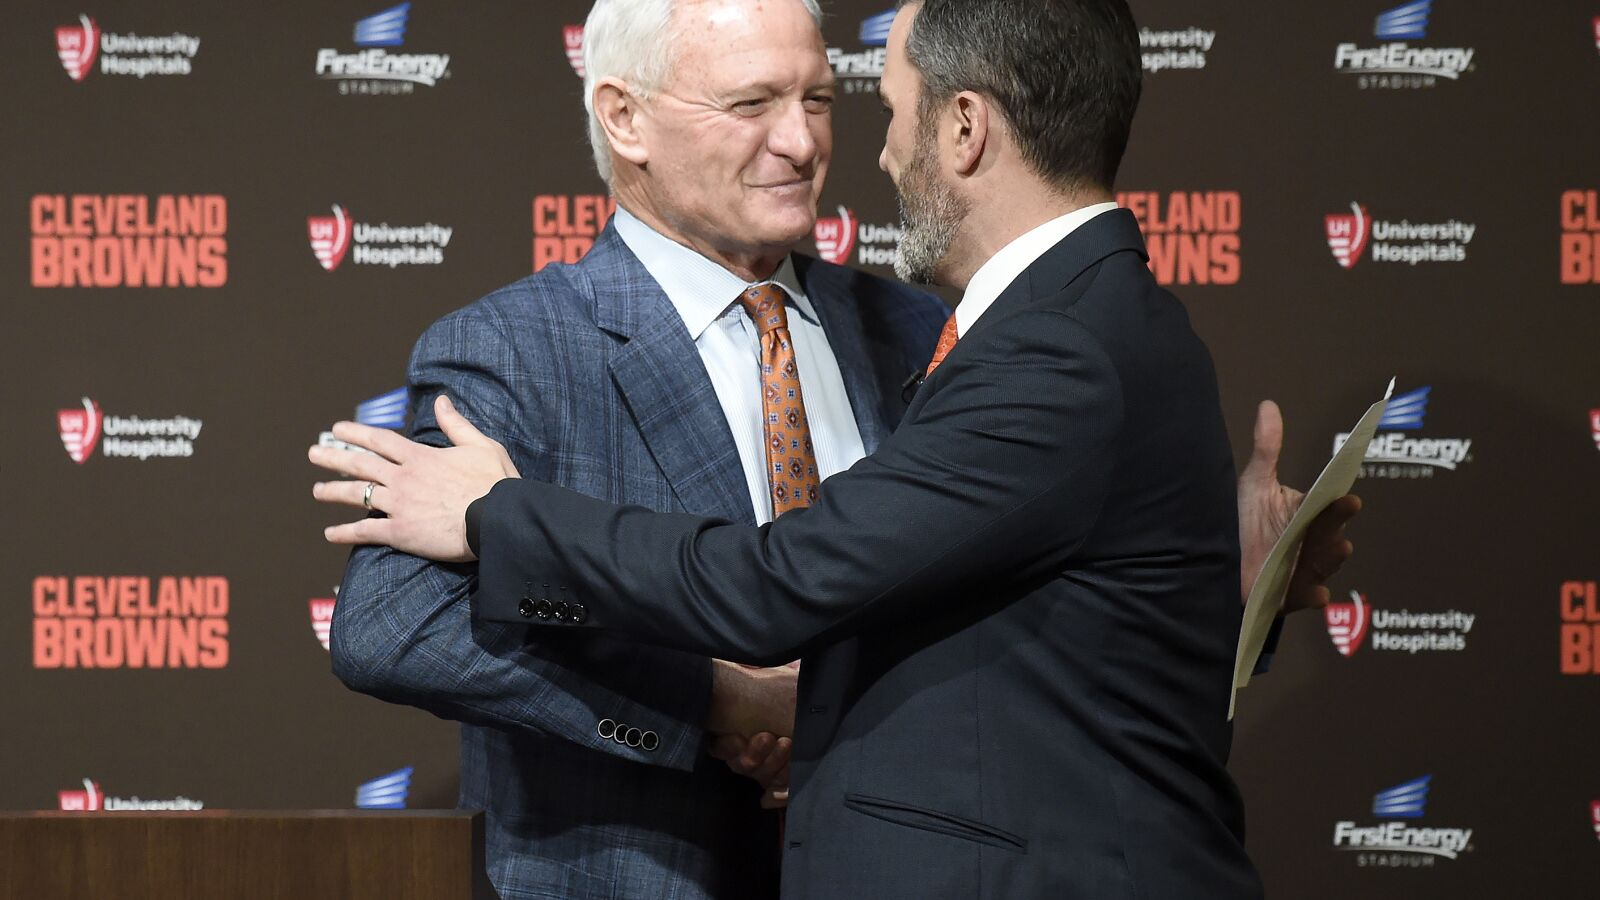 Cleveland Browns could be close to hiring George Paton as general manager